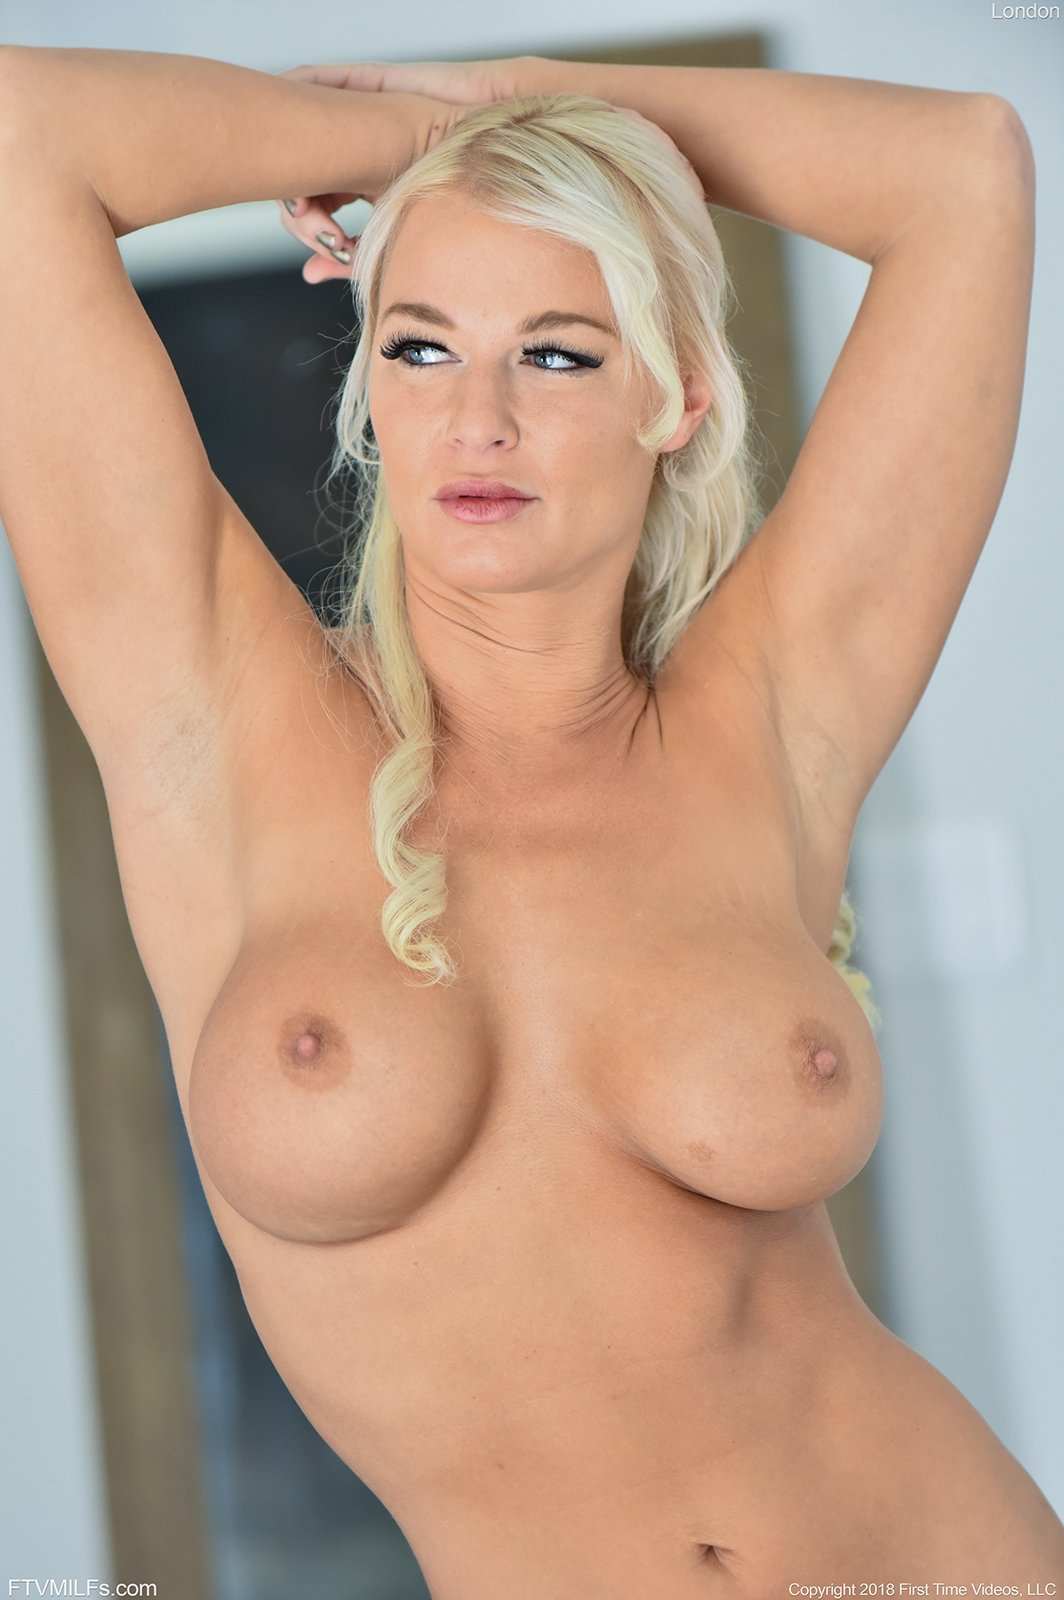 free hot blonde porn videos there